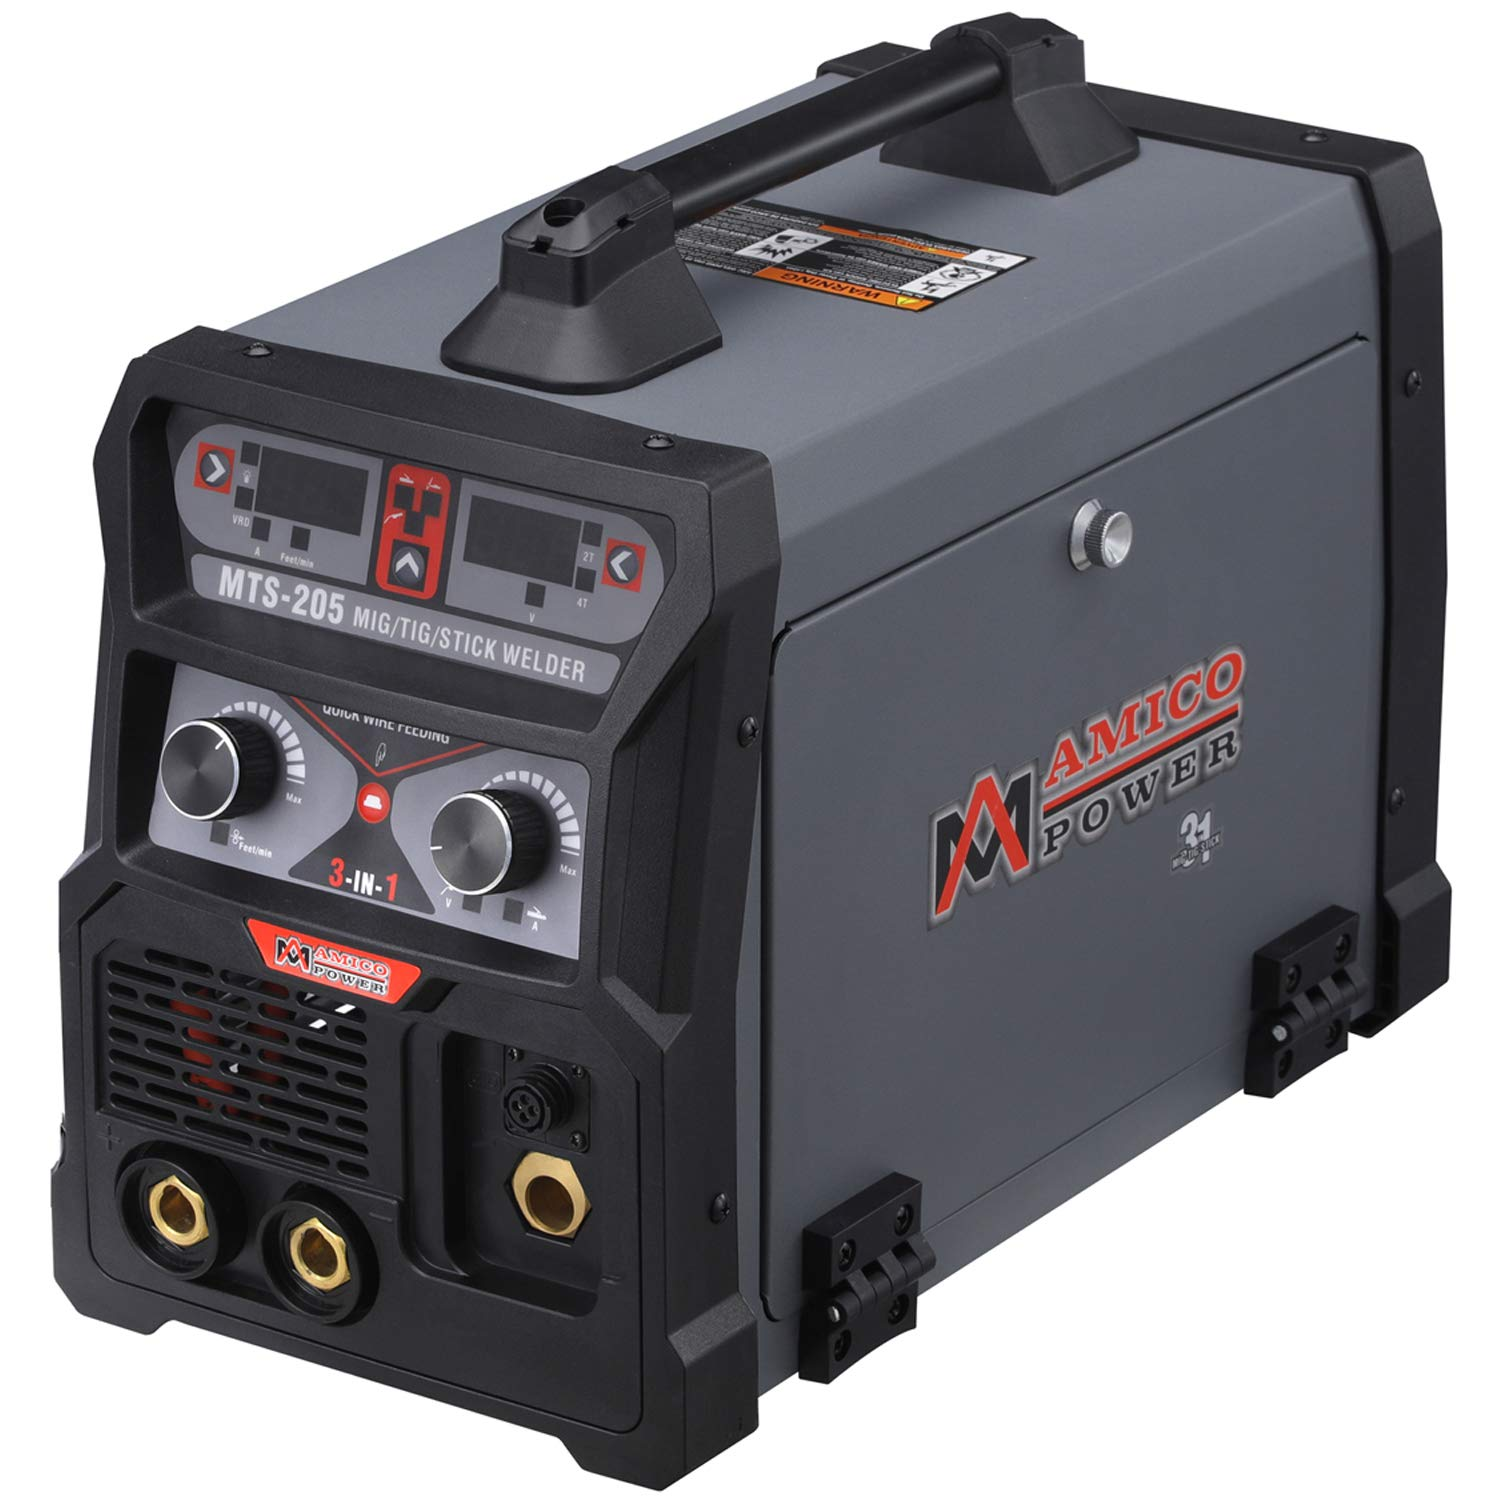 MTS-205 205 Amp MIG/TIG-Torch/Stick Arc Combo Welder, Weld Aluminum(MIG) 110/230V Dual Voltage Welding New by AmicoPower